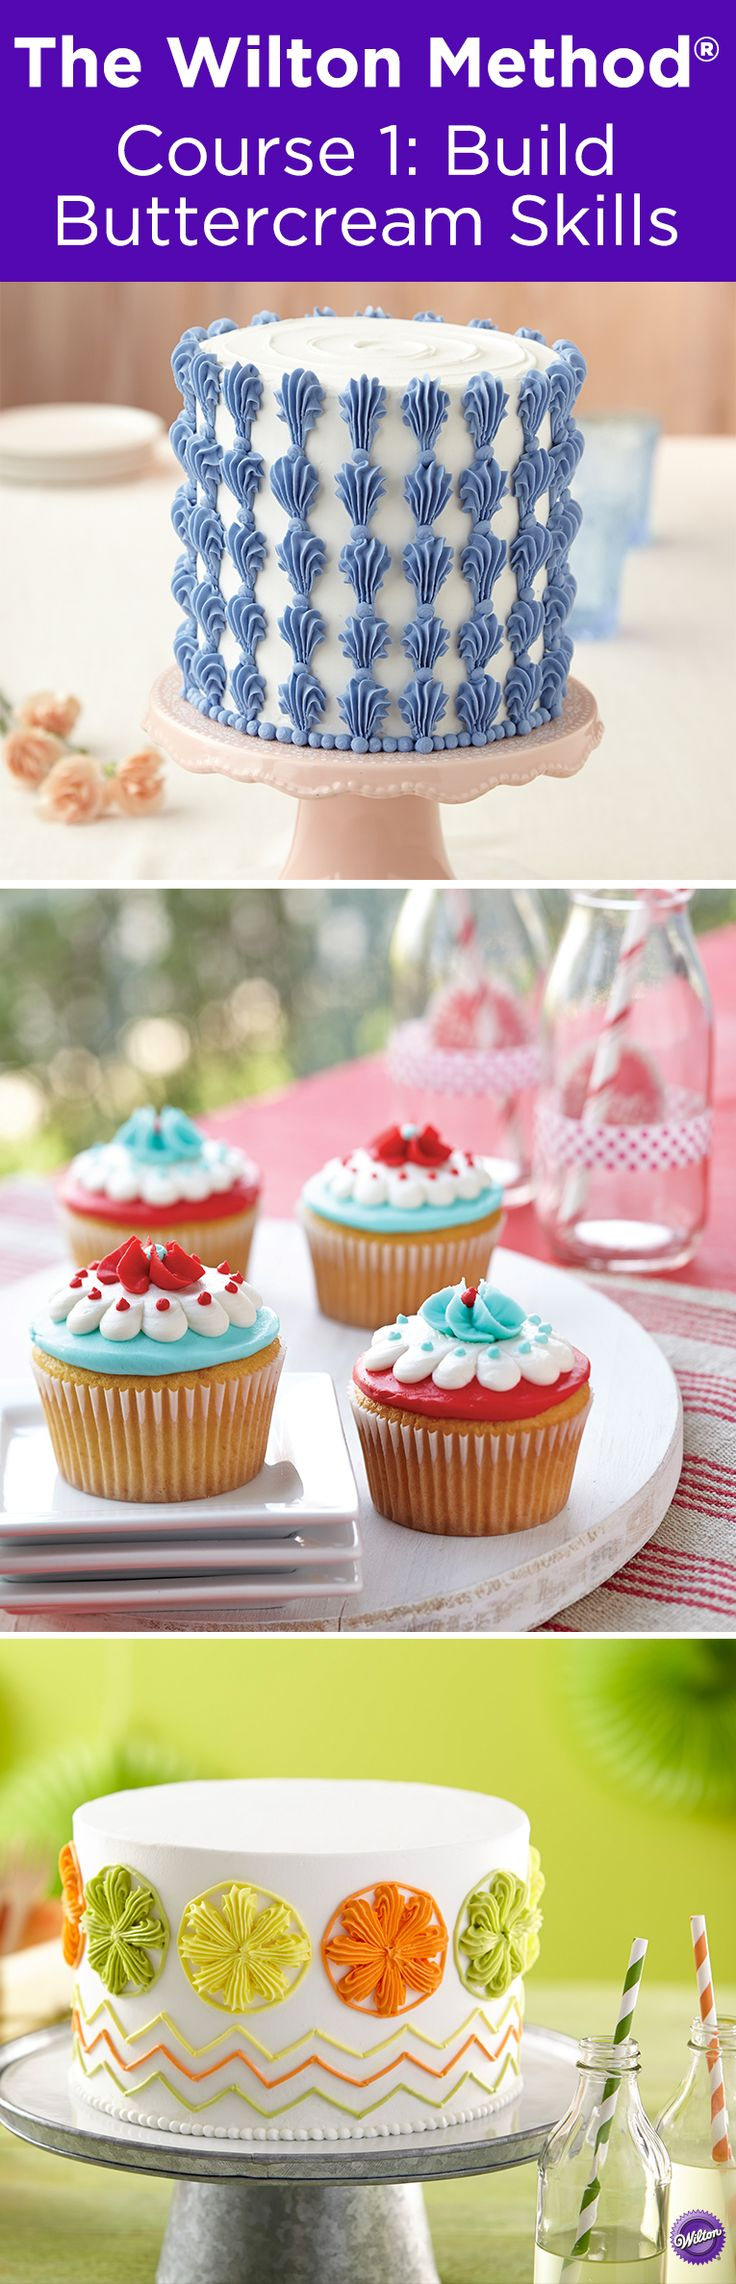 best 25+ cake decorating techniques ideas only on pinterest